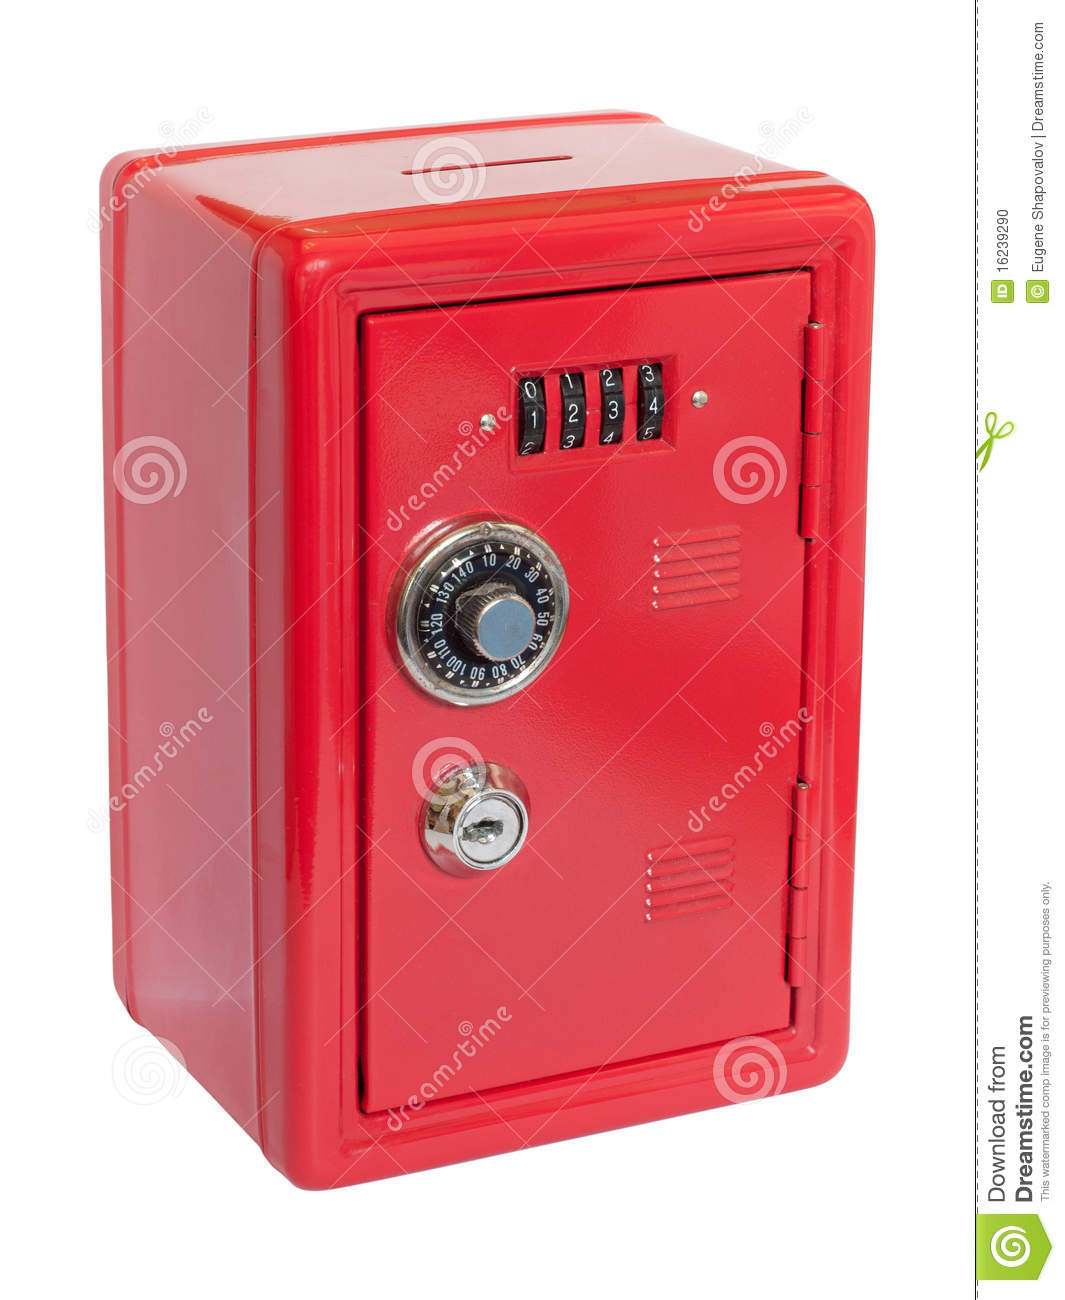 Rotes moneybox Safe